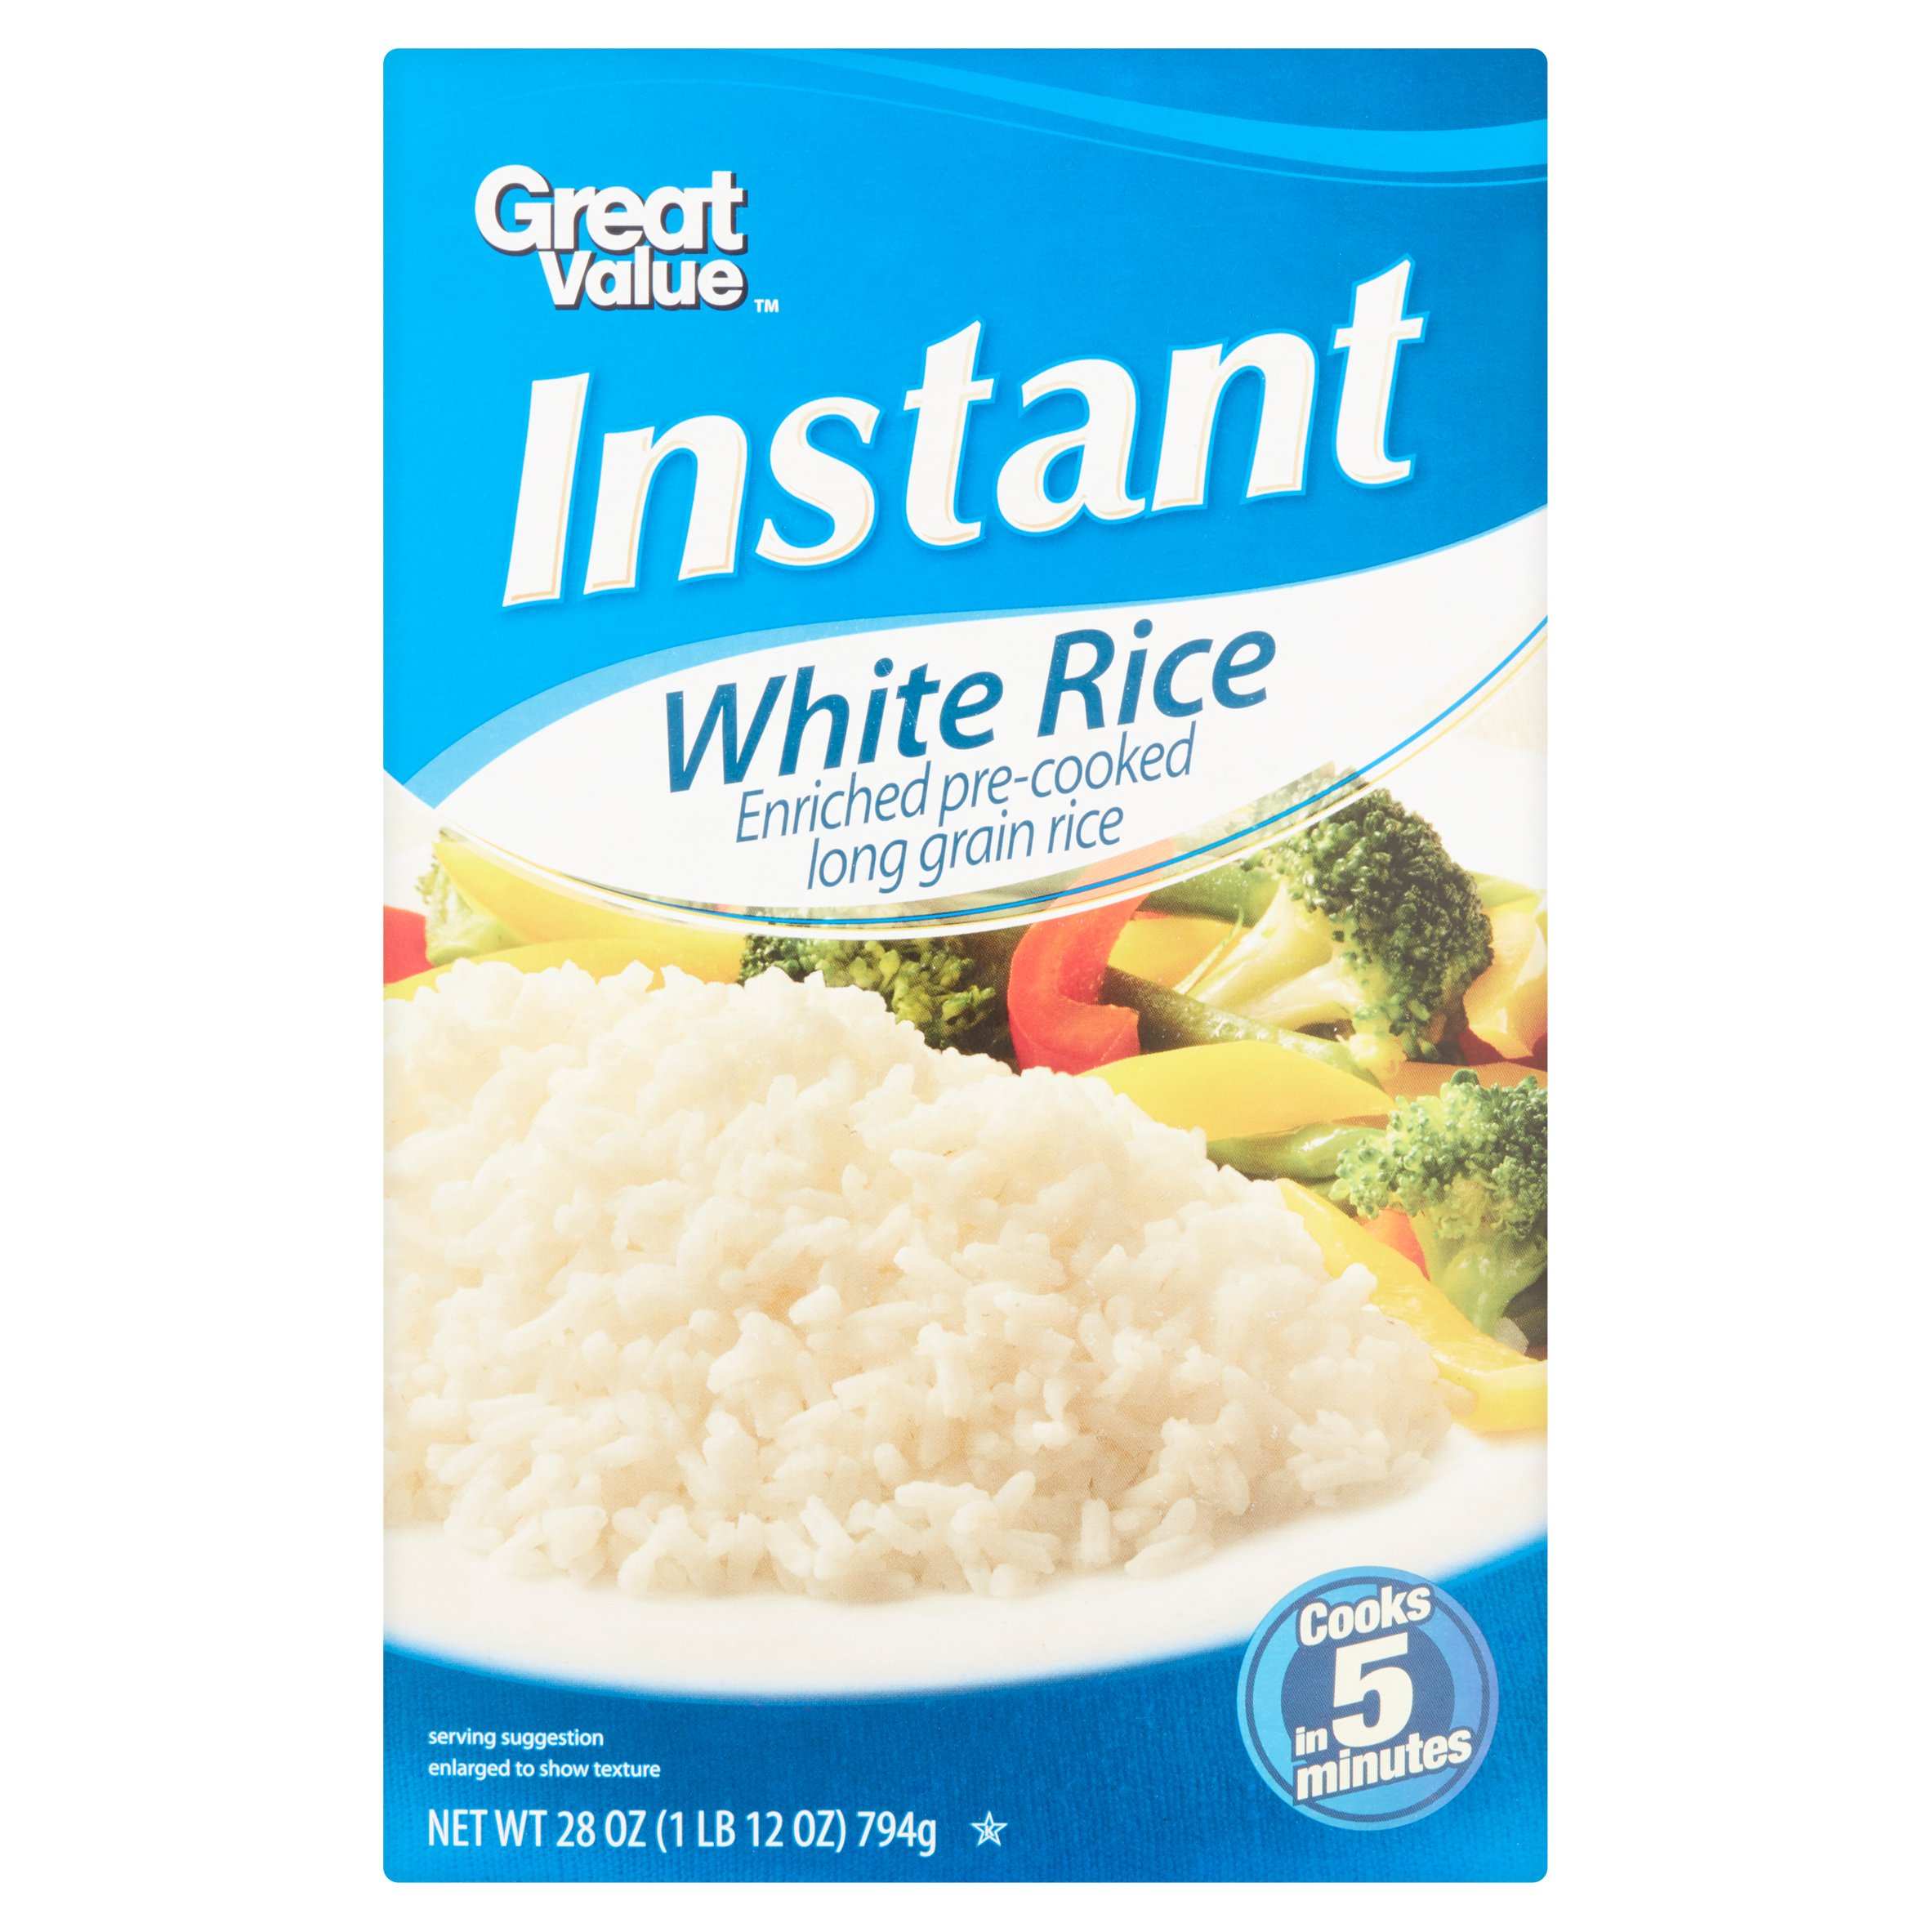 Great Value Instant White Rice, 28 oz by Wal-Mart Stores, Inc.